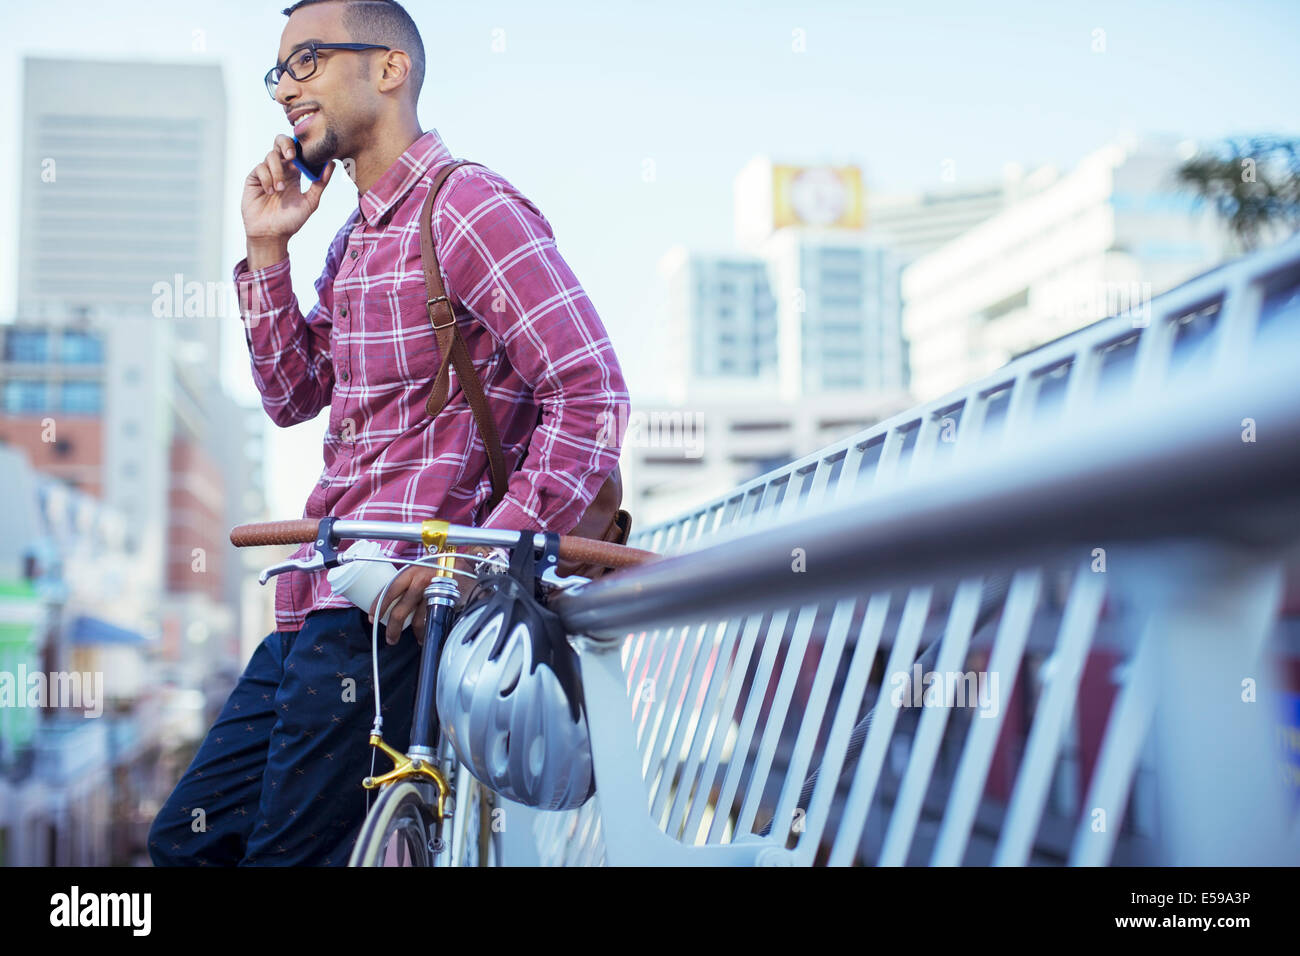 Man talking on cell phone on city street - Stock Image